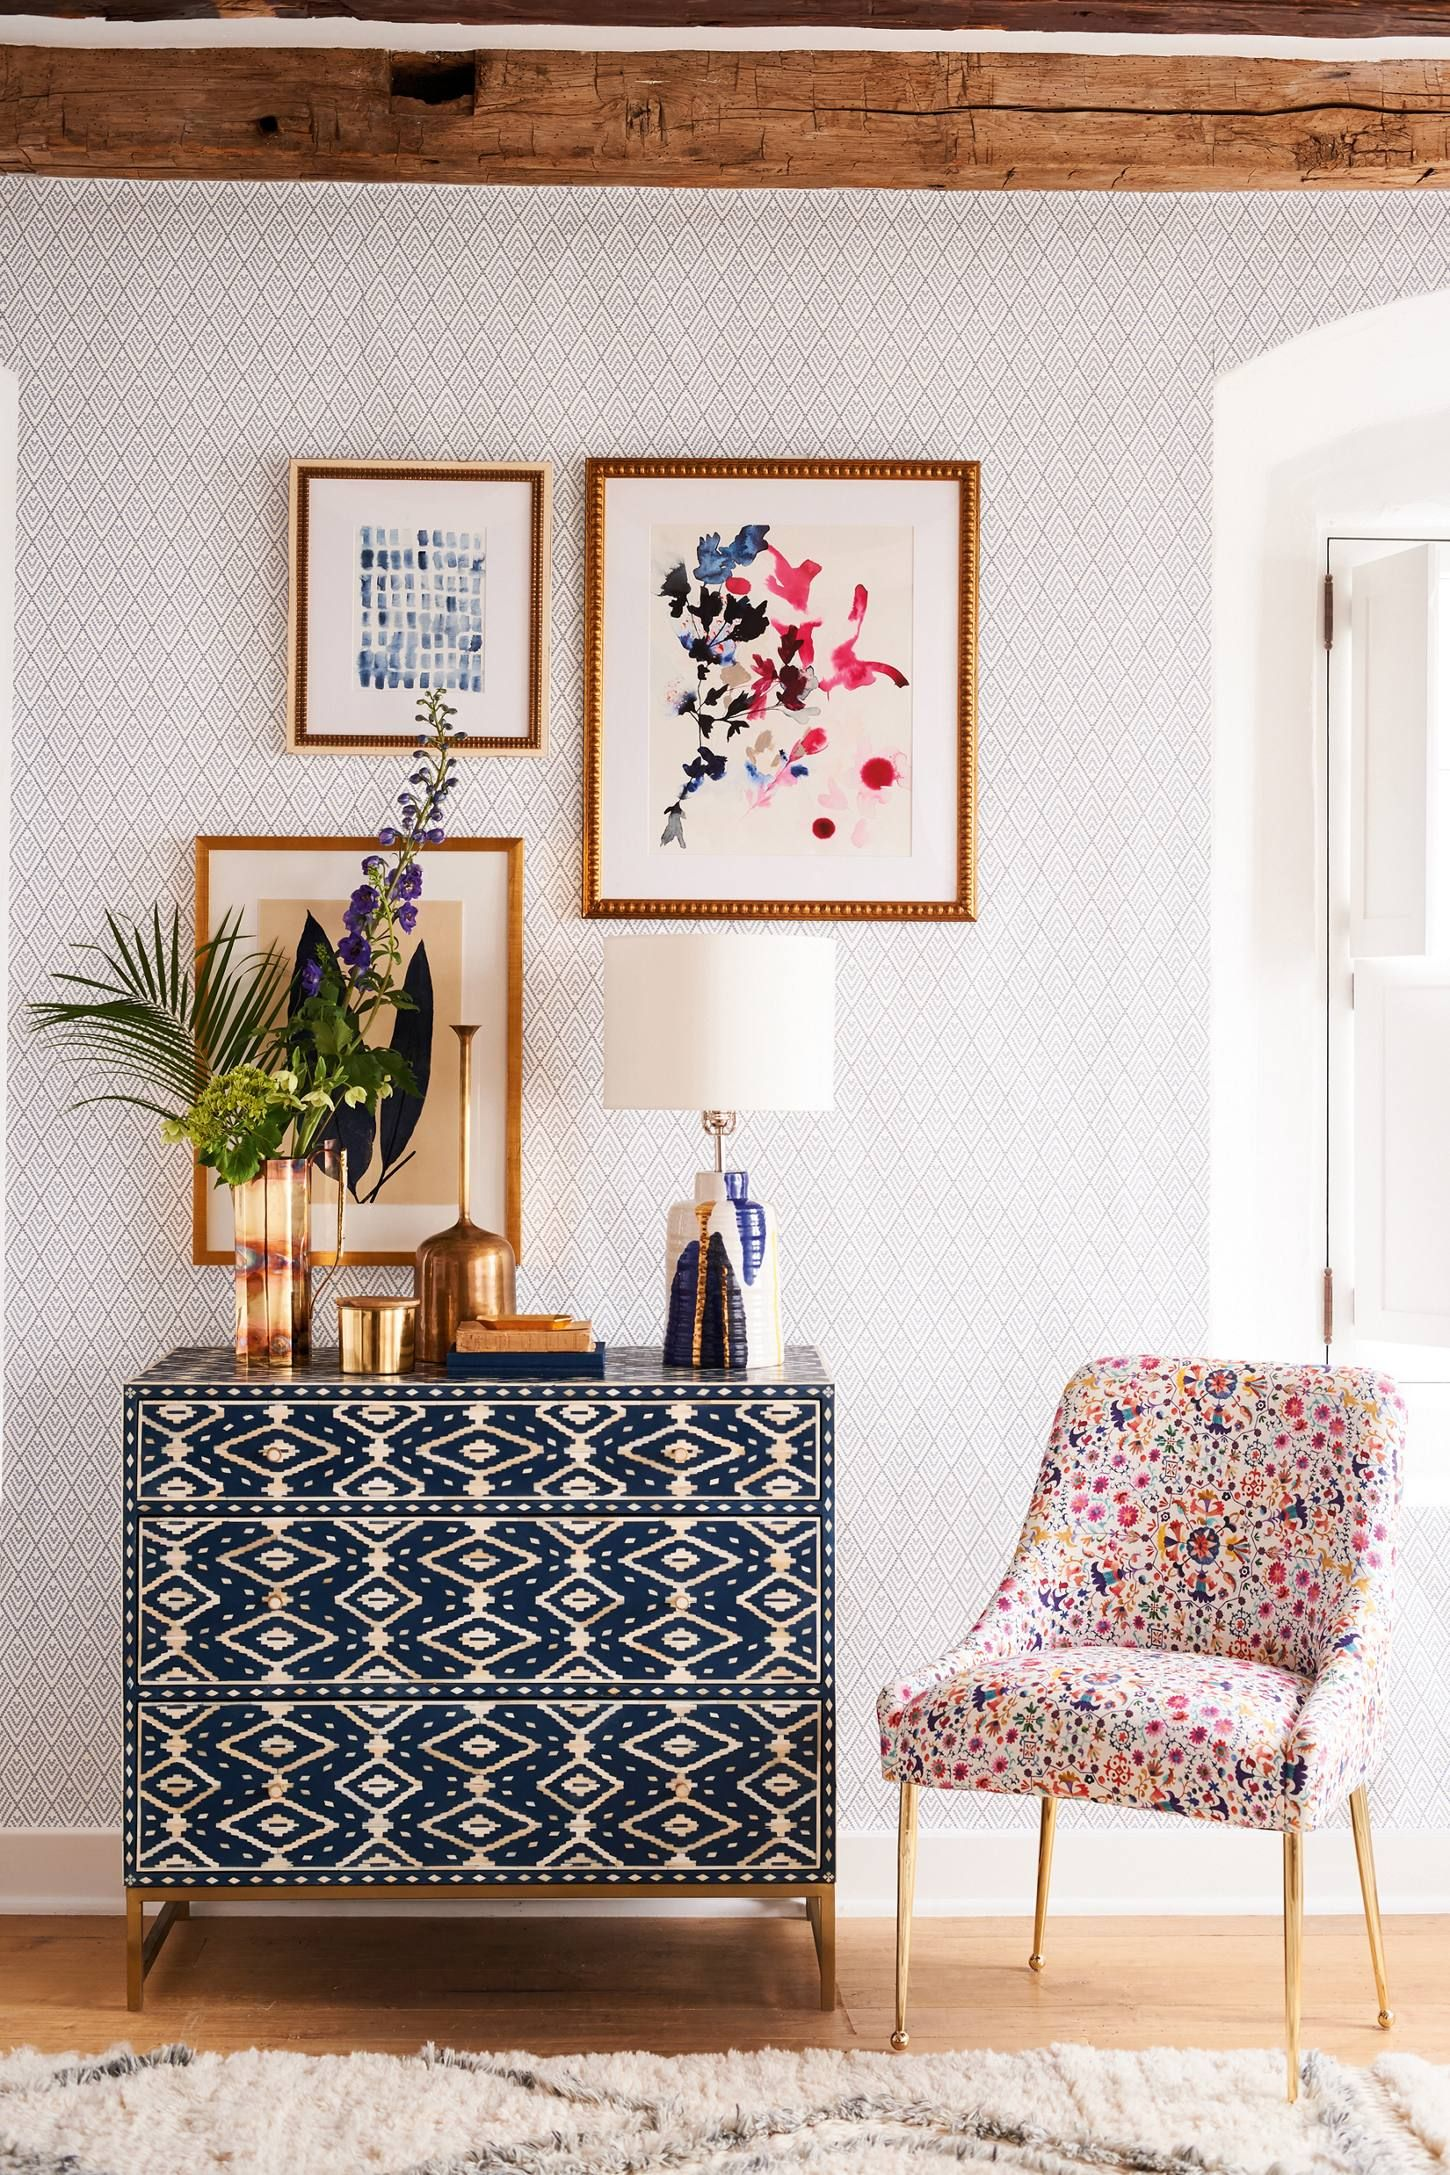 Shop The Ikat Inlay Three Drawer Dresser And More Anthropologie At  Anthropologie Today. Read Customer Reviews, Discover Product Details And  More.